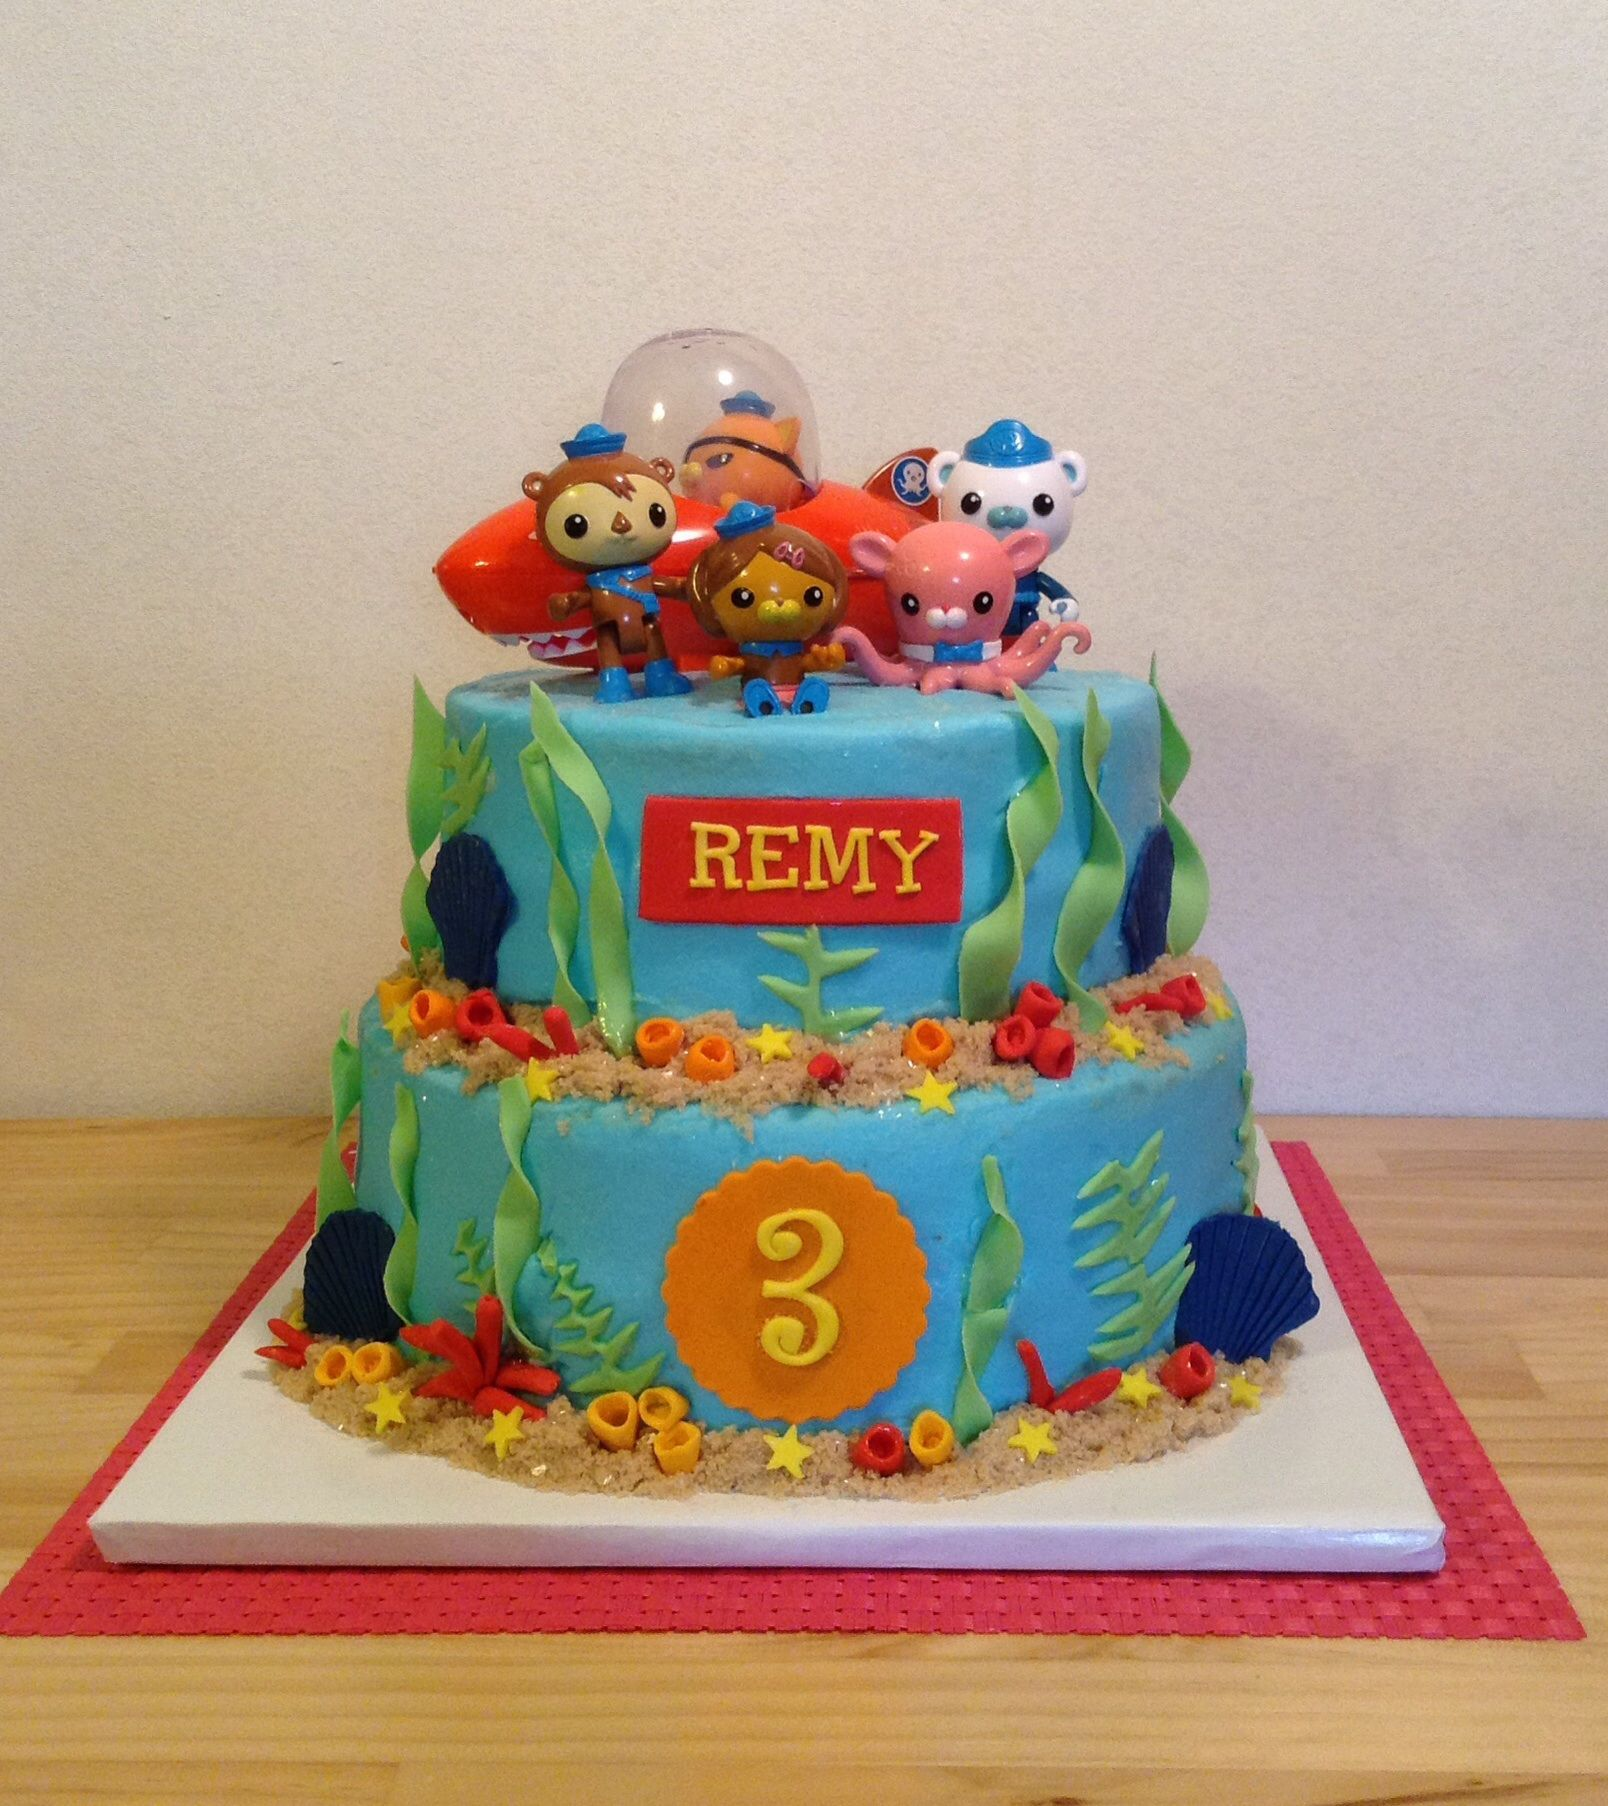 Octonauts Birthday Cake 8 10 Inch Double Layer Cakes Buttercream Icing With Mmf Accents Toys On Top